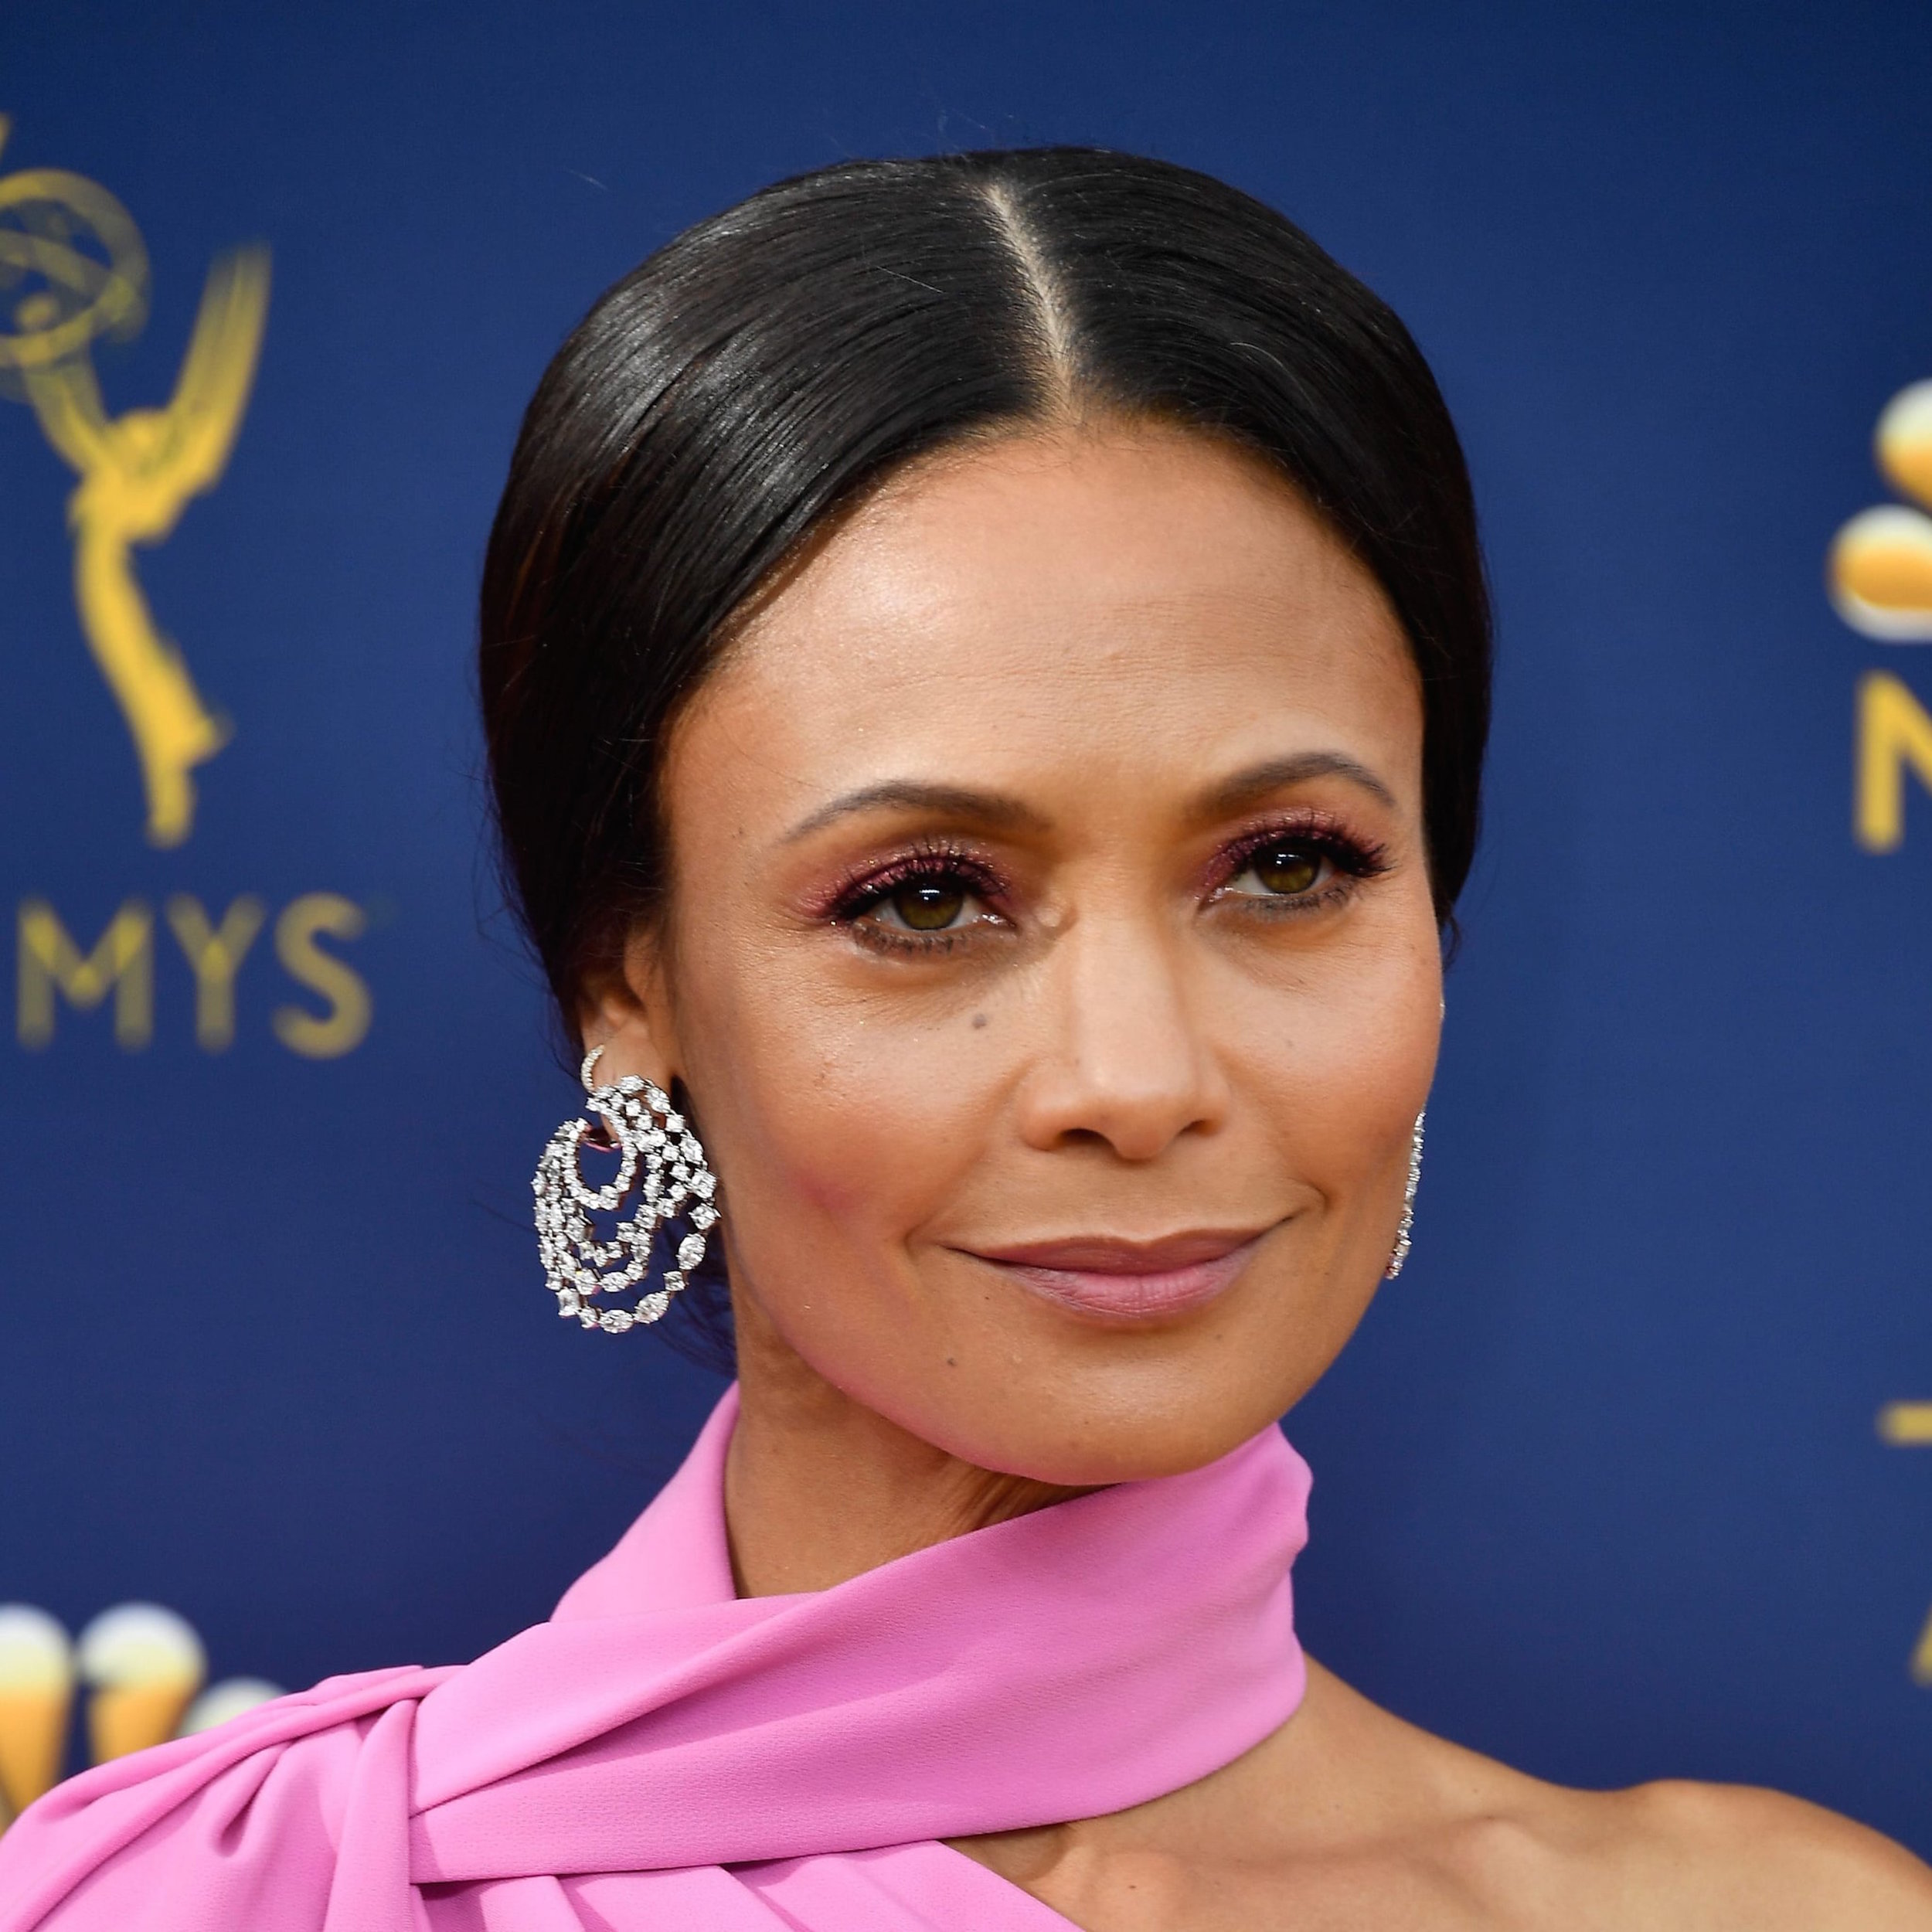 Thandie Newton, winner of the Outstanding Supporting Actress award for her role in HBO's Westworld, chose Harry Winston's secret combination diamond hoop earrings totaling 18.74 carats to accent her orchid-pink Brandon Maxwell gown. Her sleek, center-parted updo showed them off beautifully, and she finished her look with diamond and platinum bands, also by Harry Winston. -